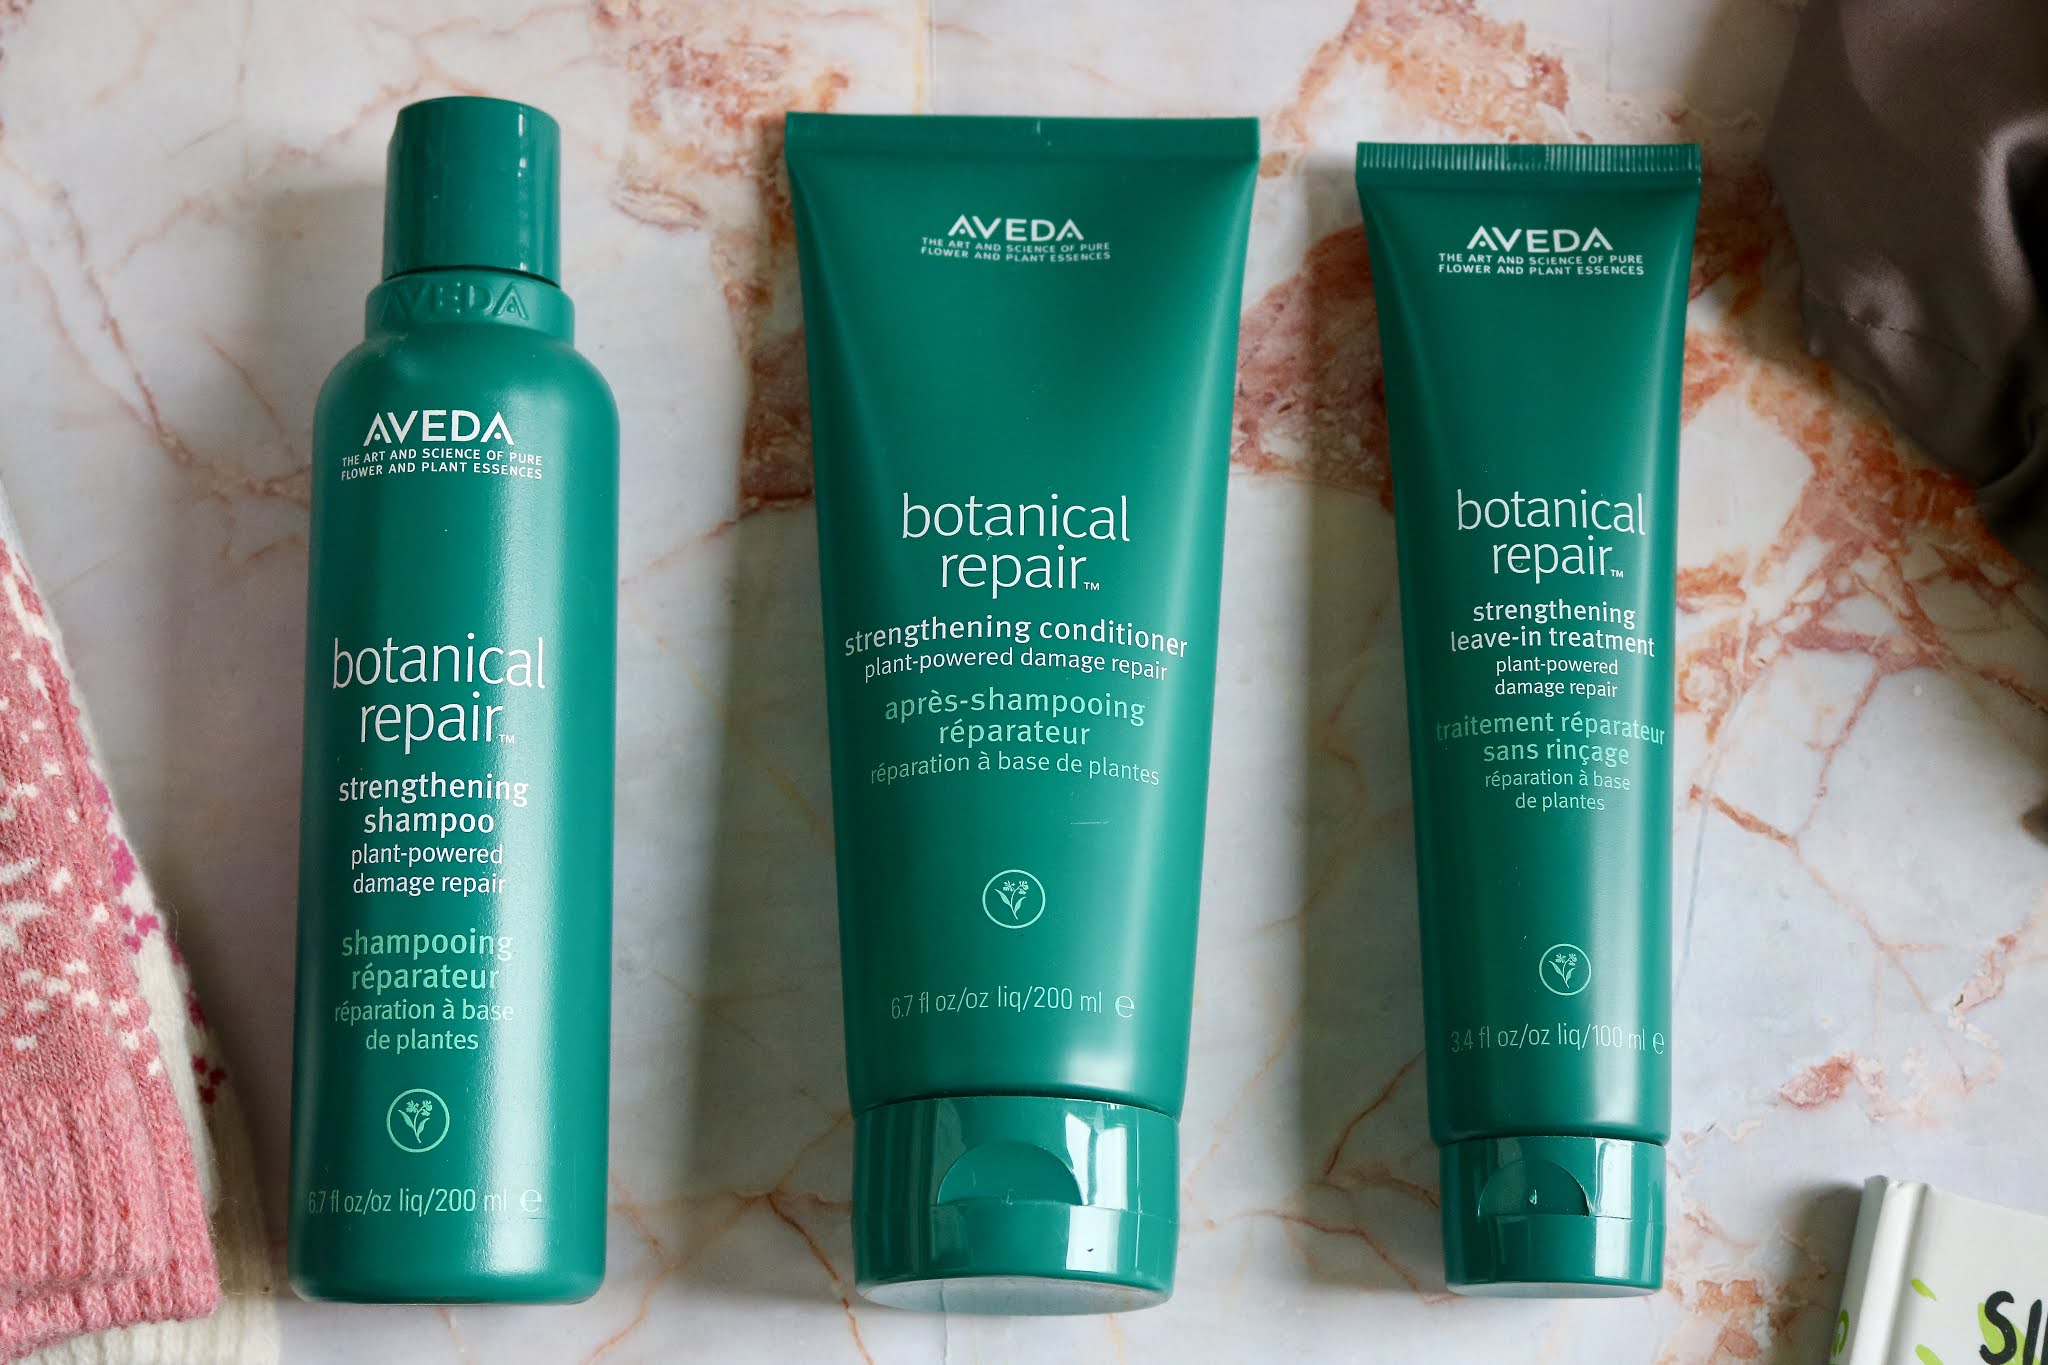 Aveda Botanical Repair Strengthening Shampoo £26, Conditioner and Leave In Treatment both £28